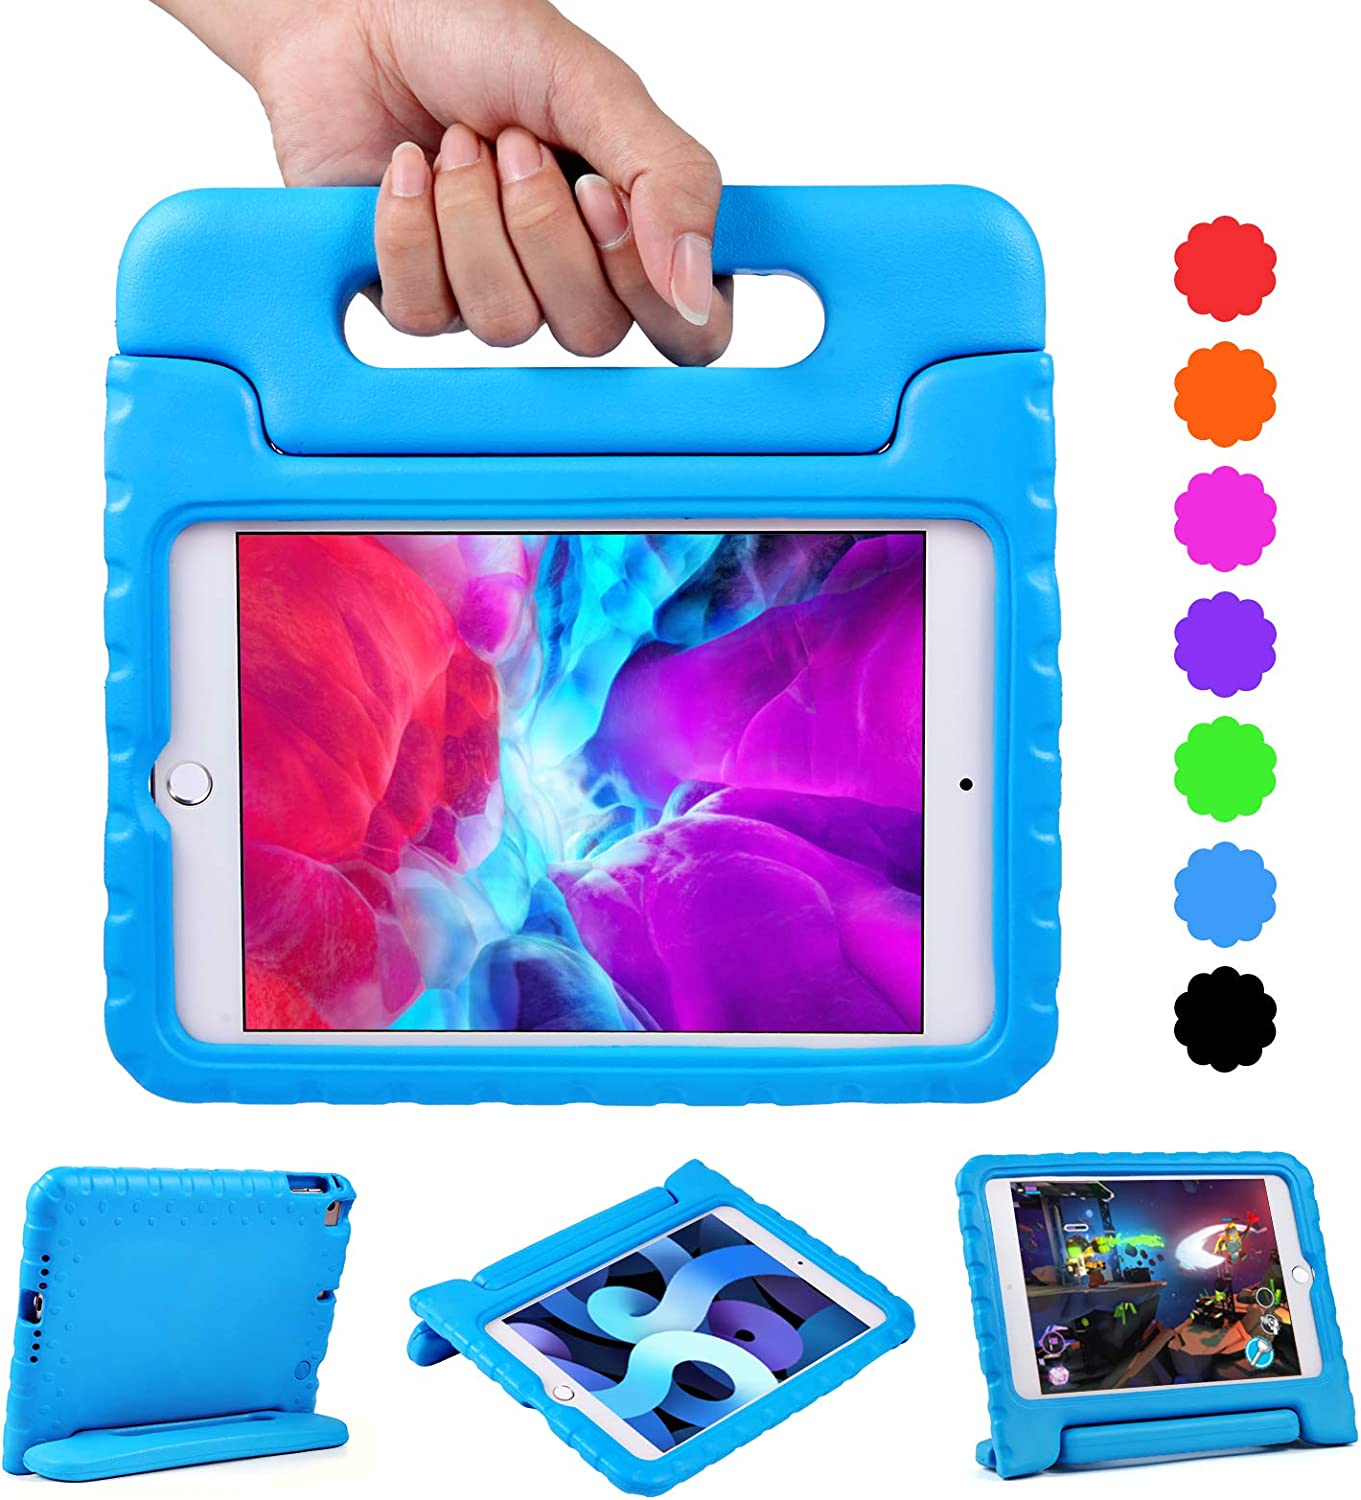 EVA Tablet Case for iPad Mini 4 / Mini 5 with Handle   Blosomeet Full Body Protective Kid-Proof Cover for iPad Mini 5th/4th Generation with 2-Angle Stand   Rugged & Lightweight Case for Boys   Blue